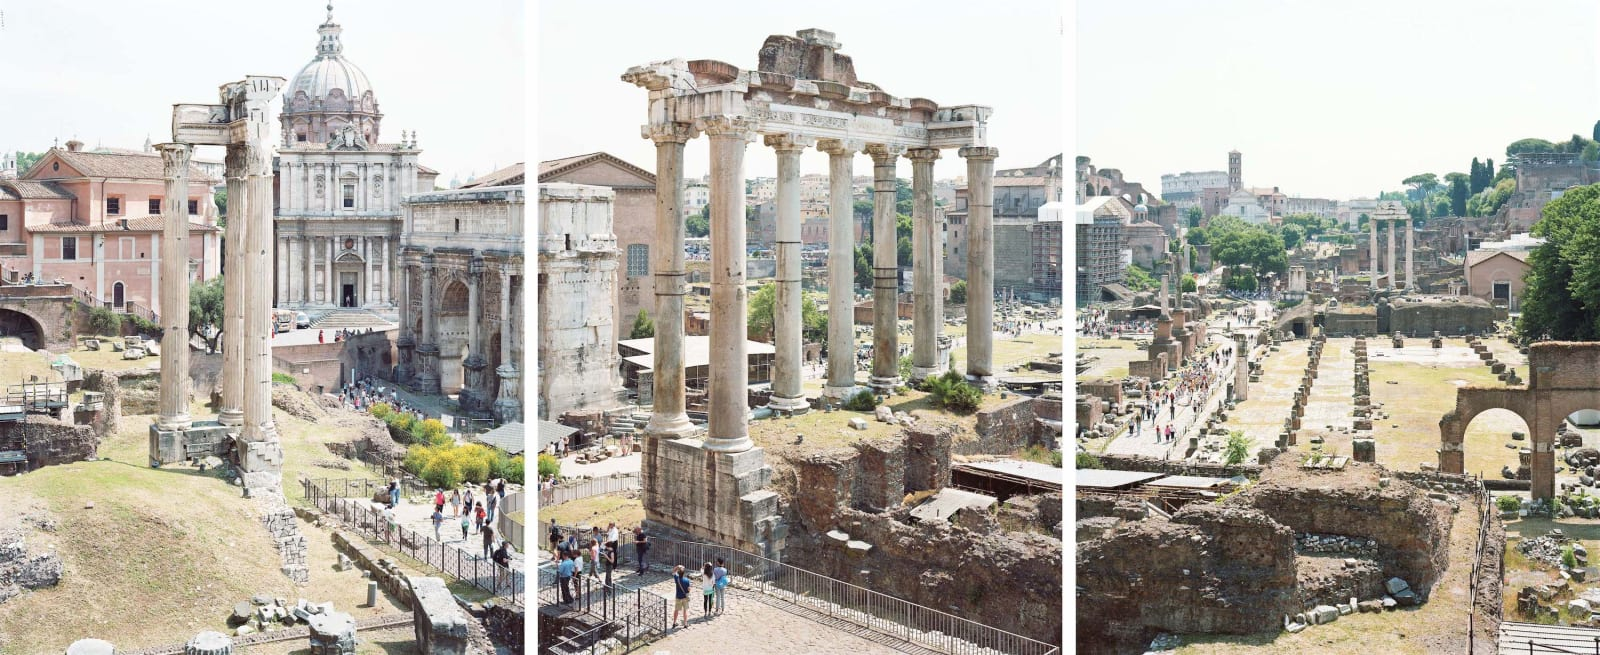 Triptych of the Roman Forum, Italy by Massimo VItali